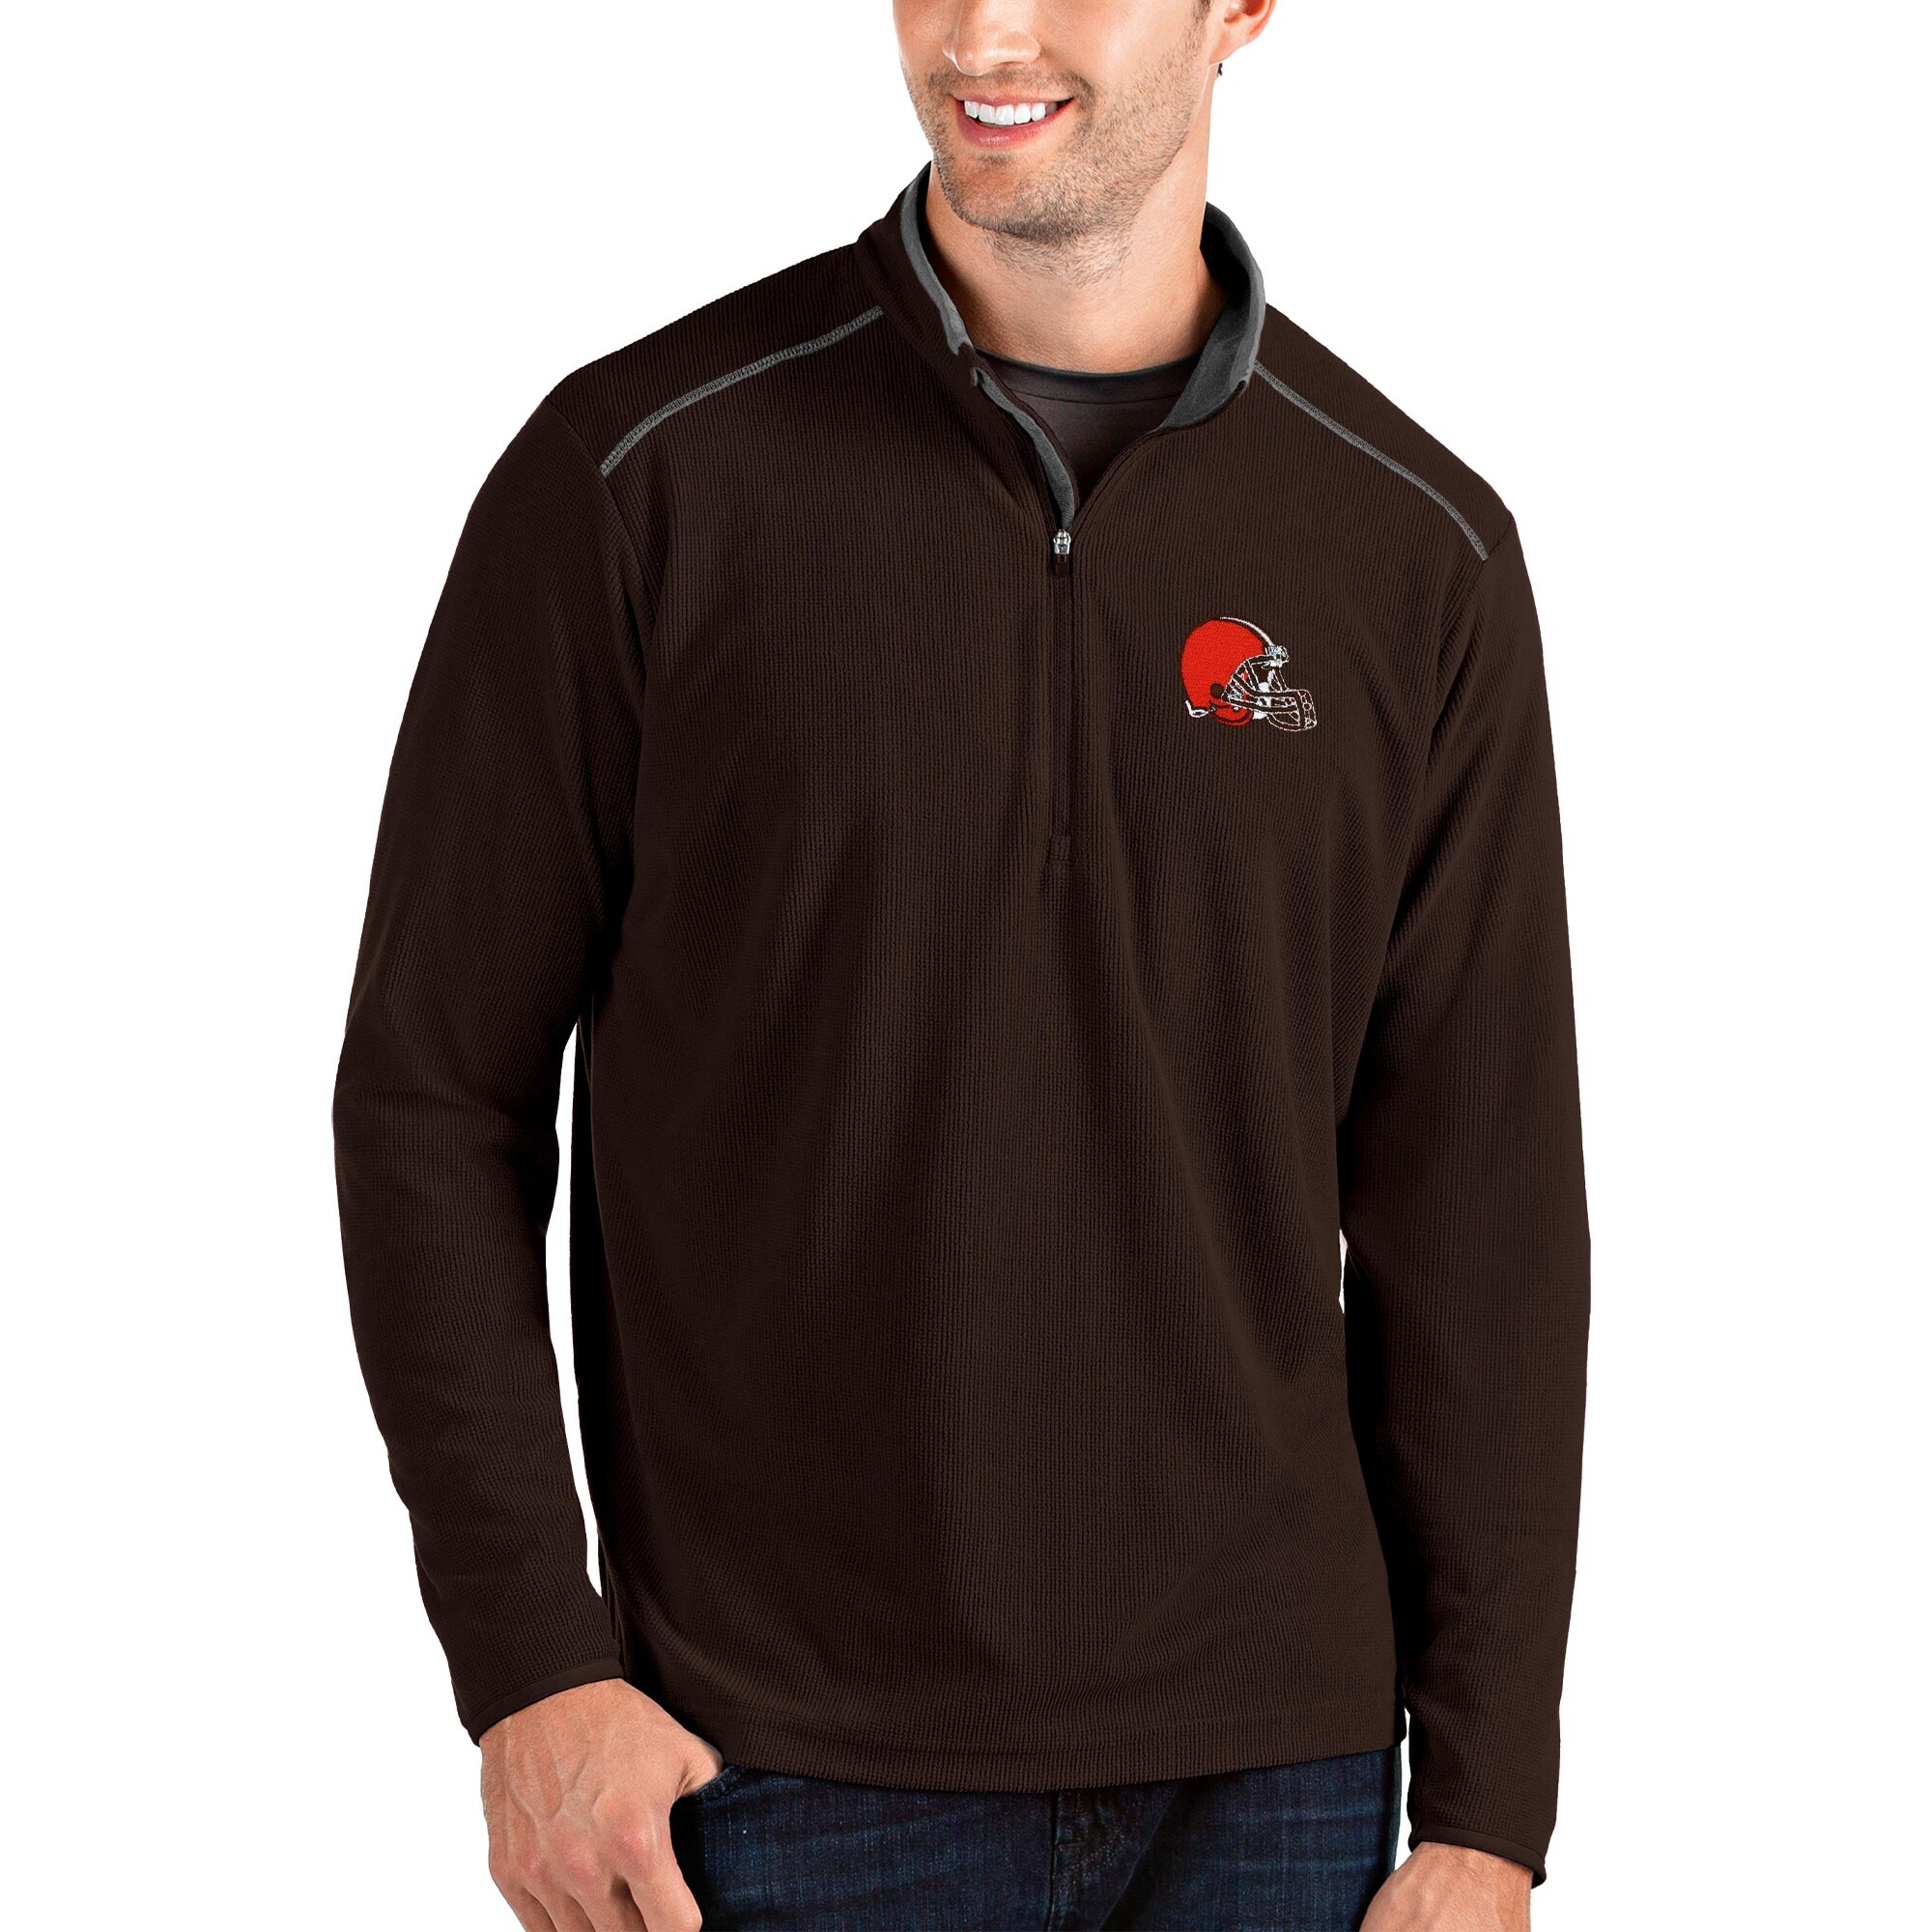 Cleveland Browns Antigua Glacier Quarter-Zip Pullover Jacket - Brown/Gray